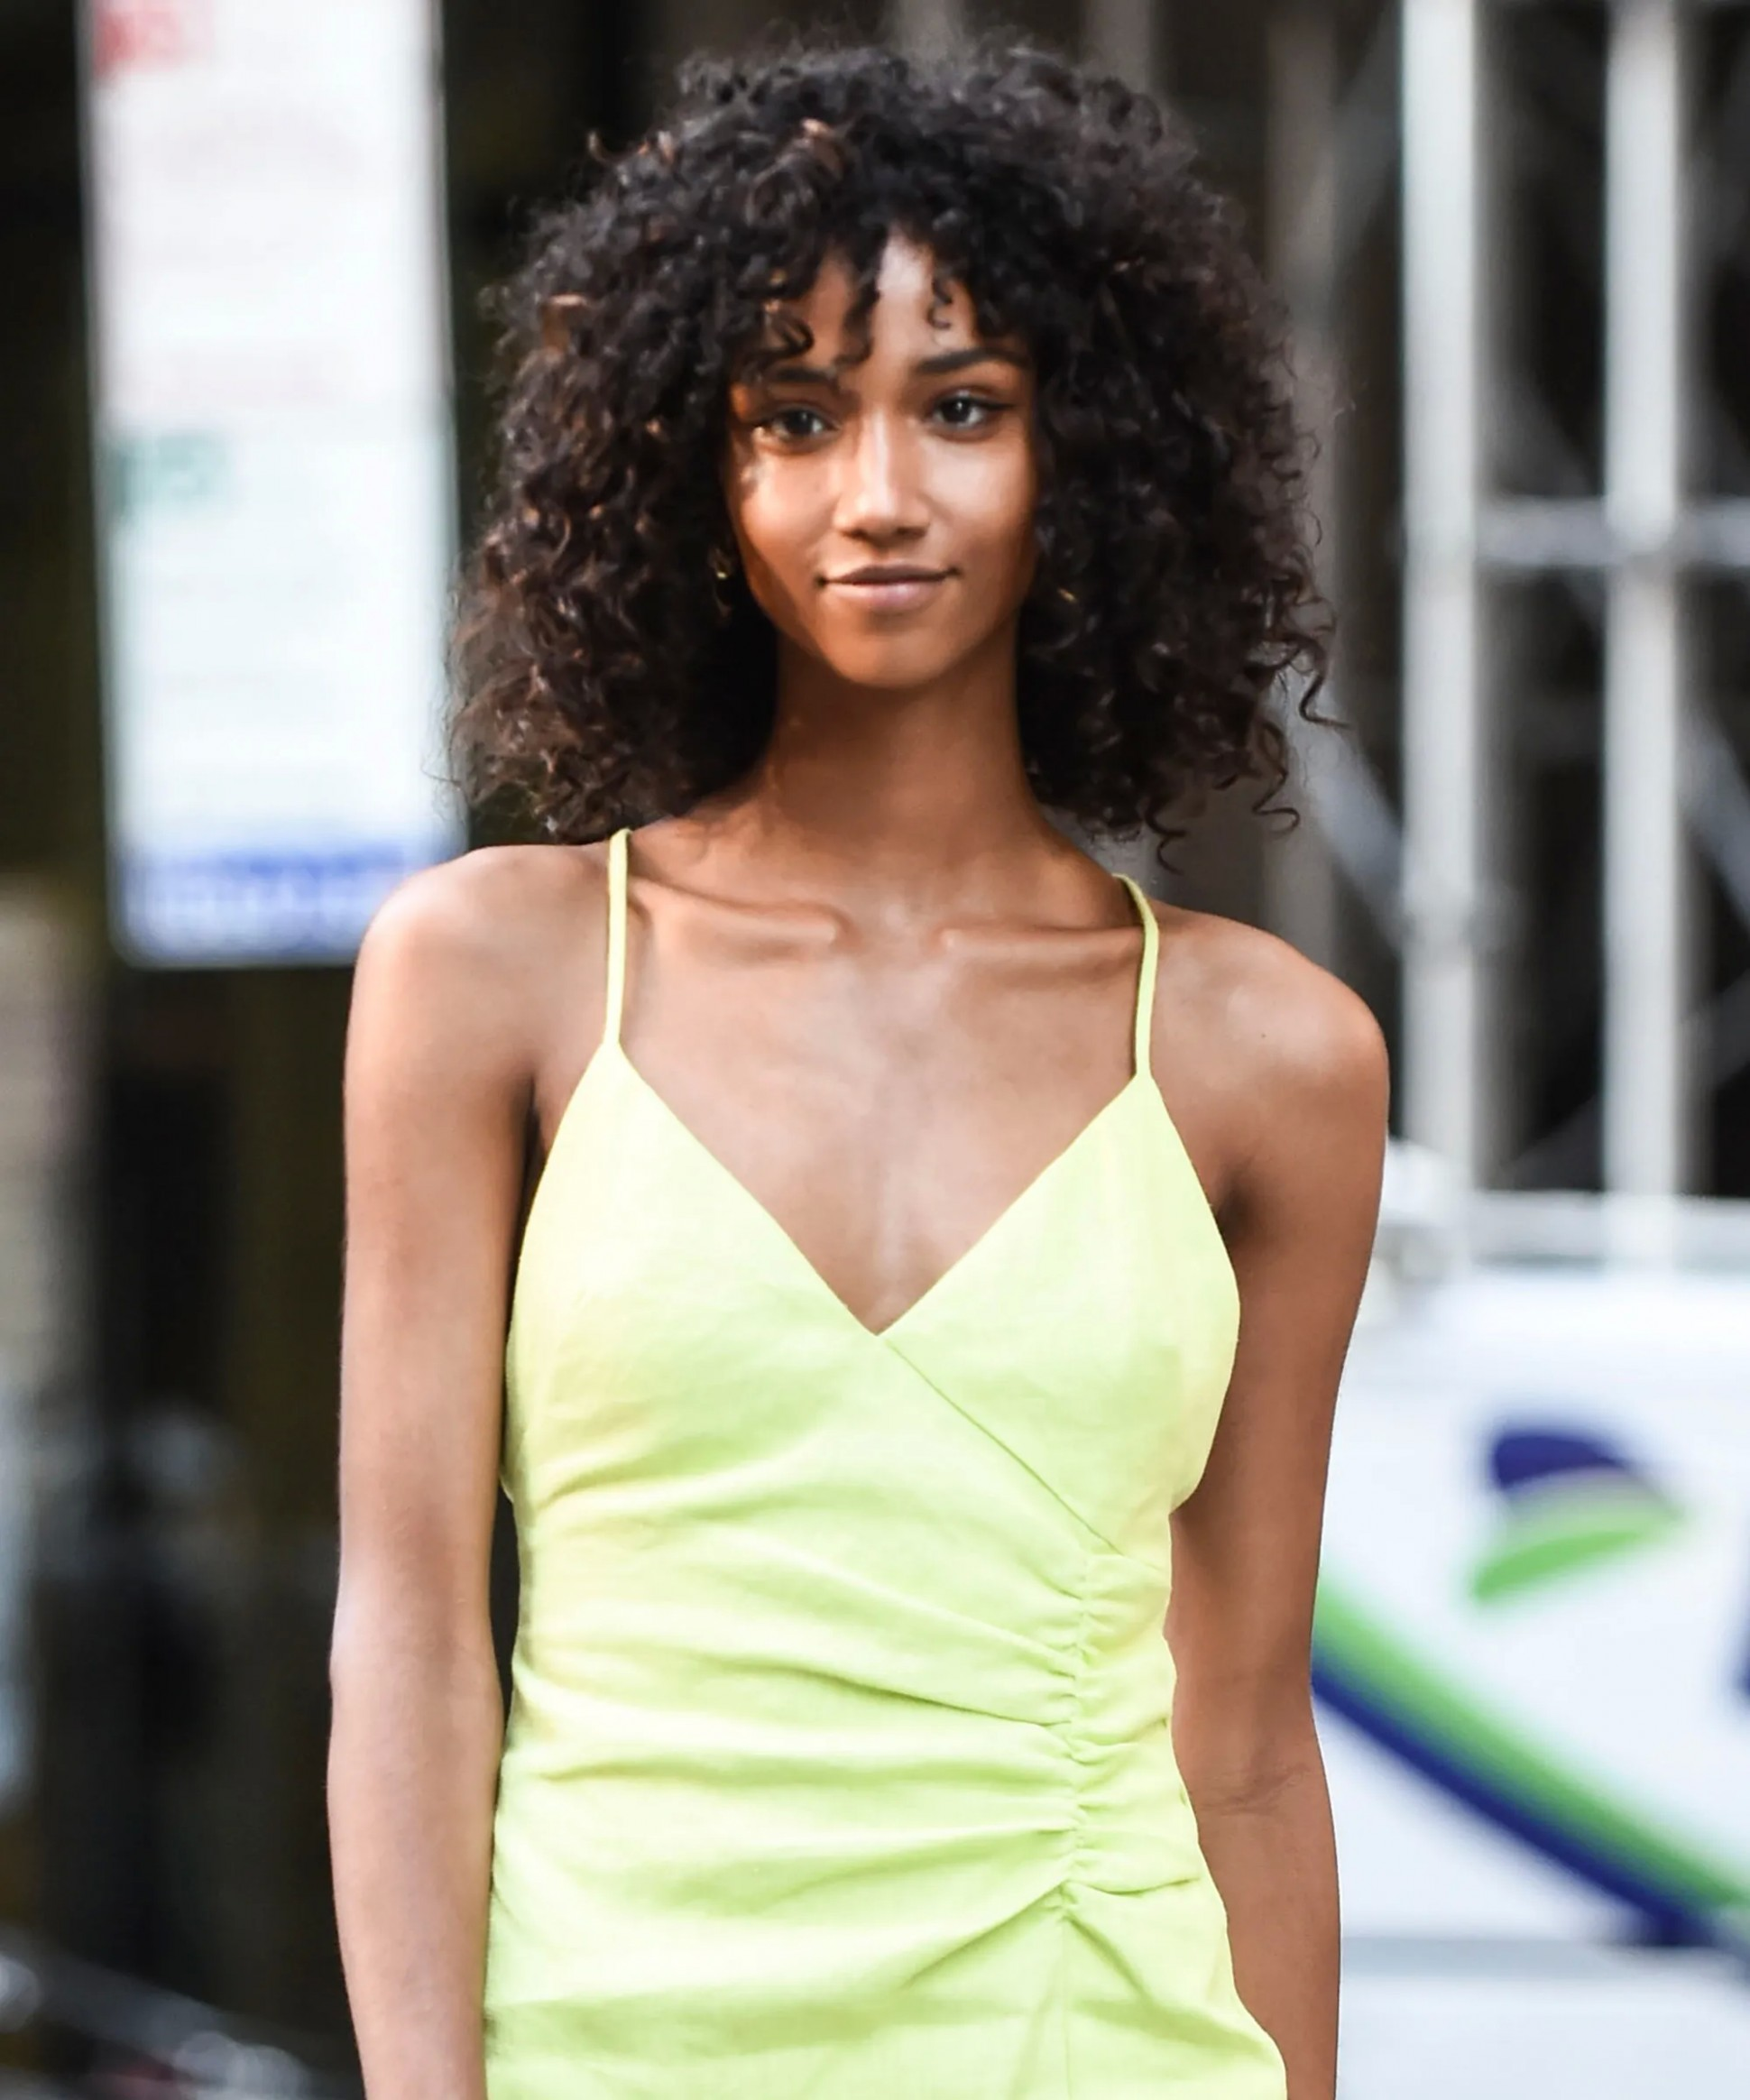 Curly Hair With Bangs Hairstyles To Inspire Your Look